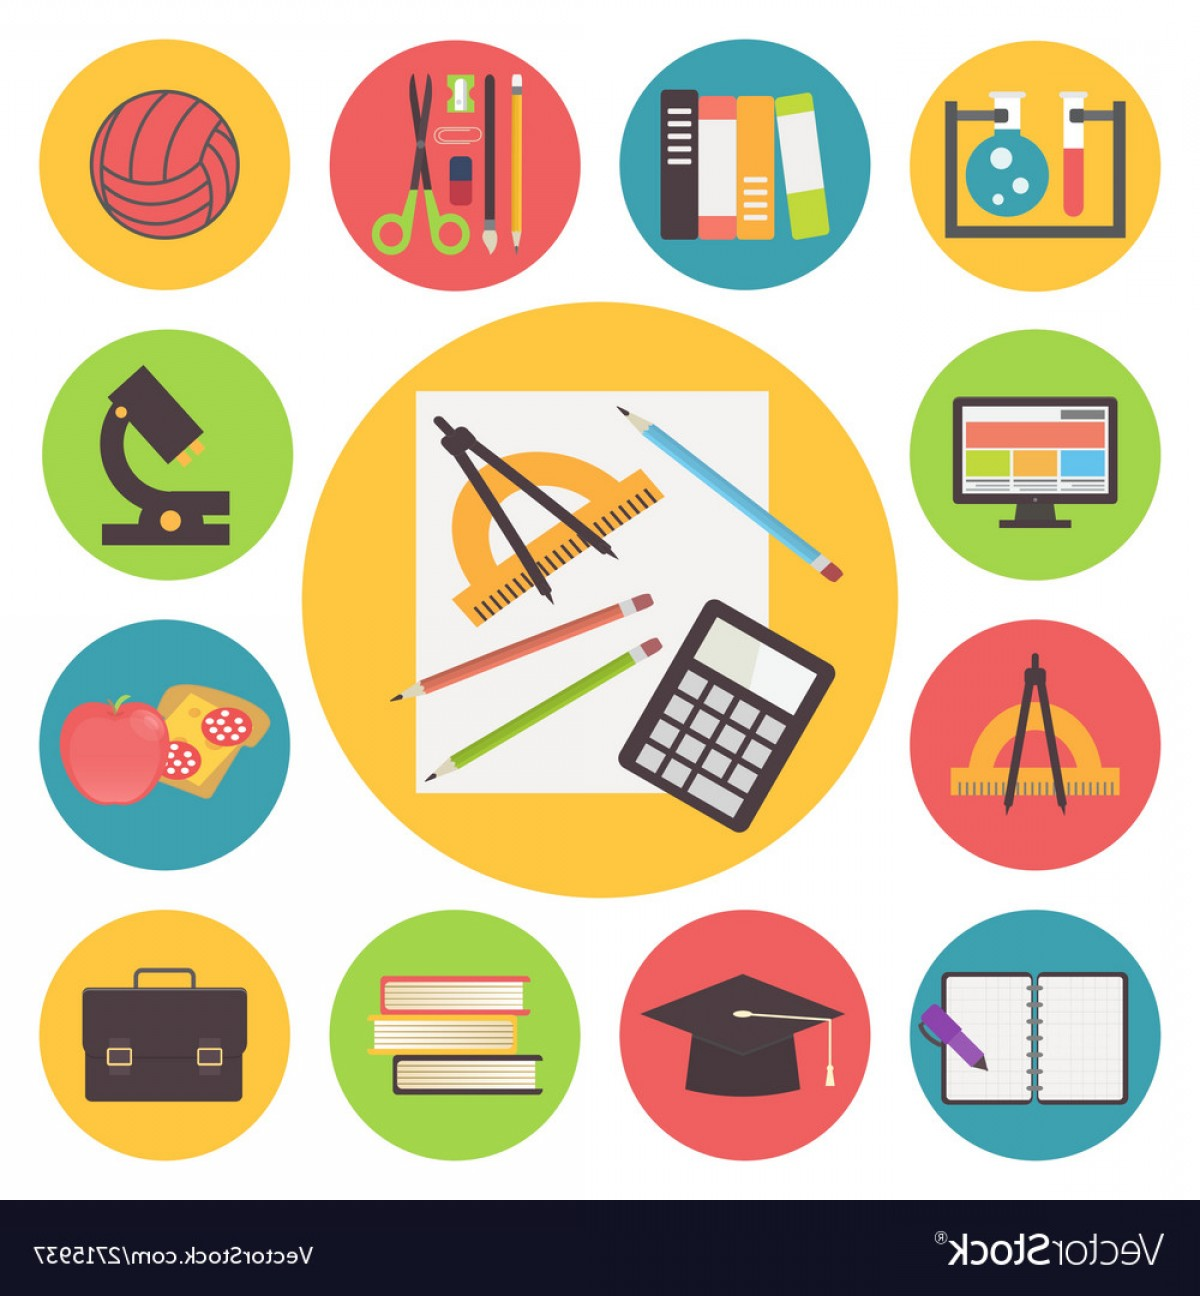 Free Vector Flat Education Icons: Back To School Icons Set Flat Design Vector